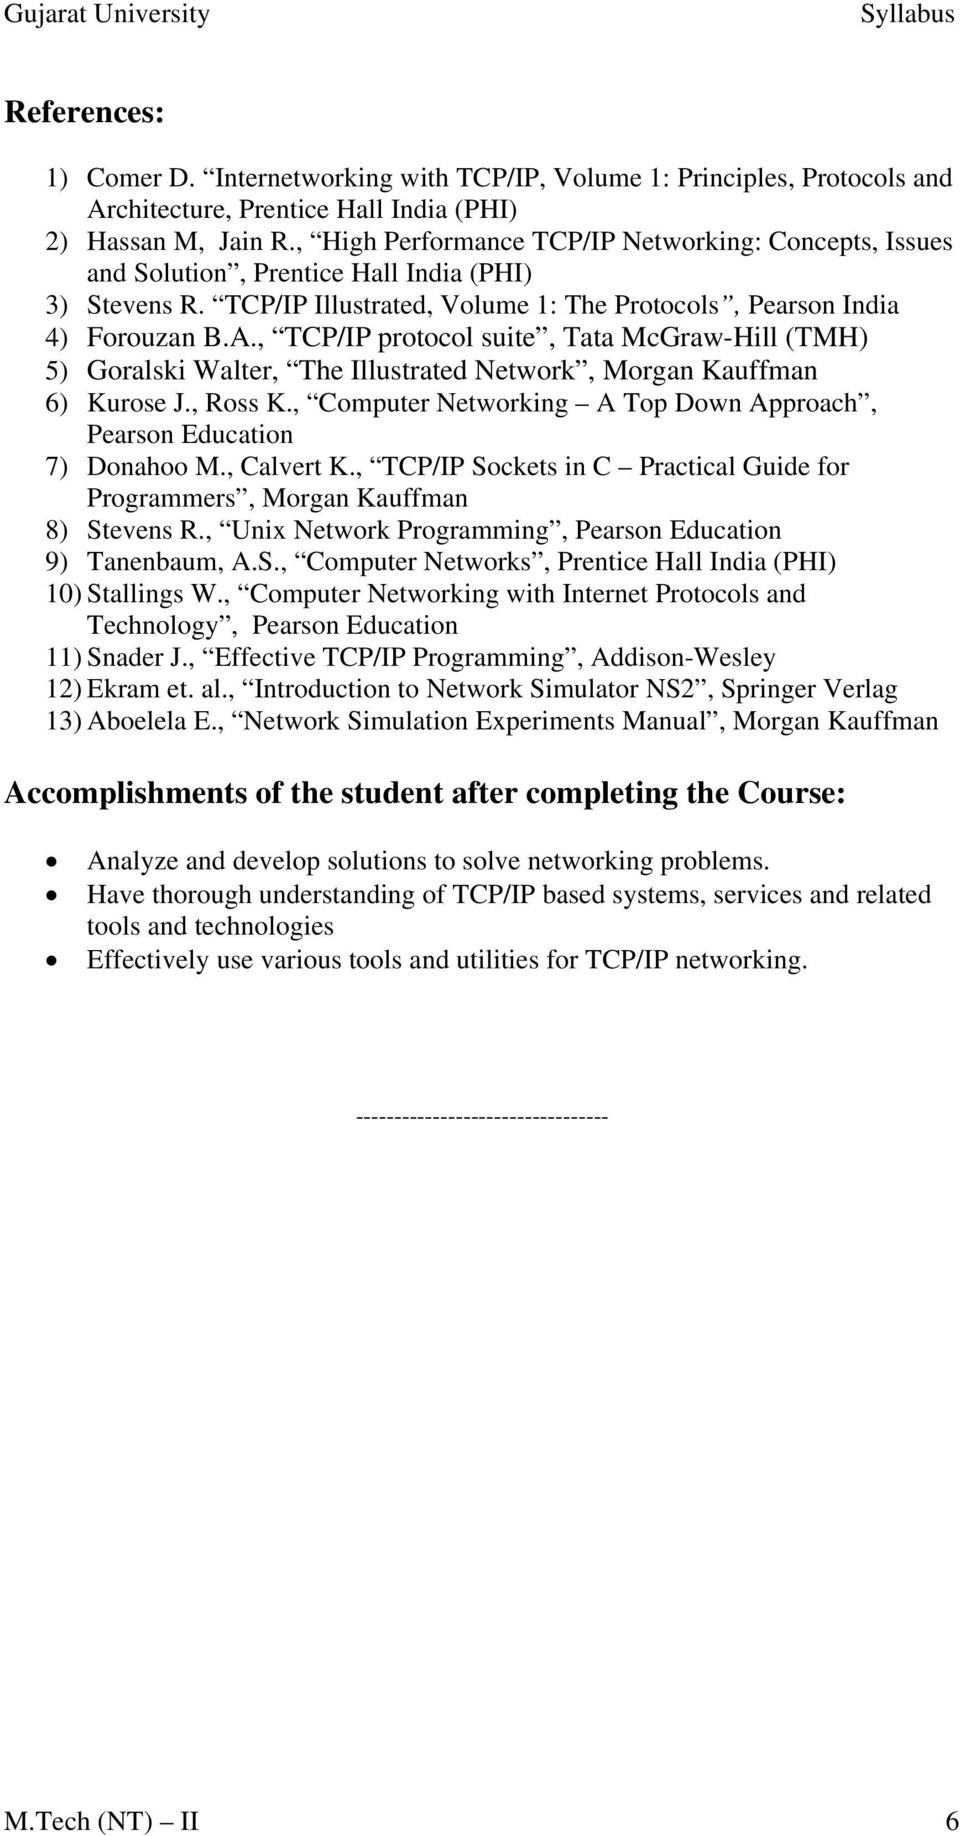 Guide to TCP/IP (Networking (Course Technology))